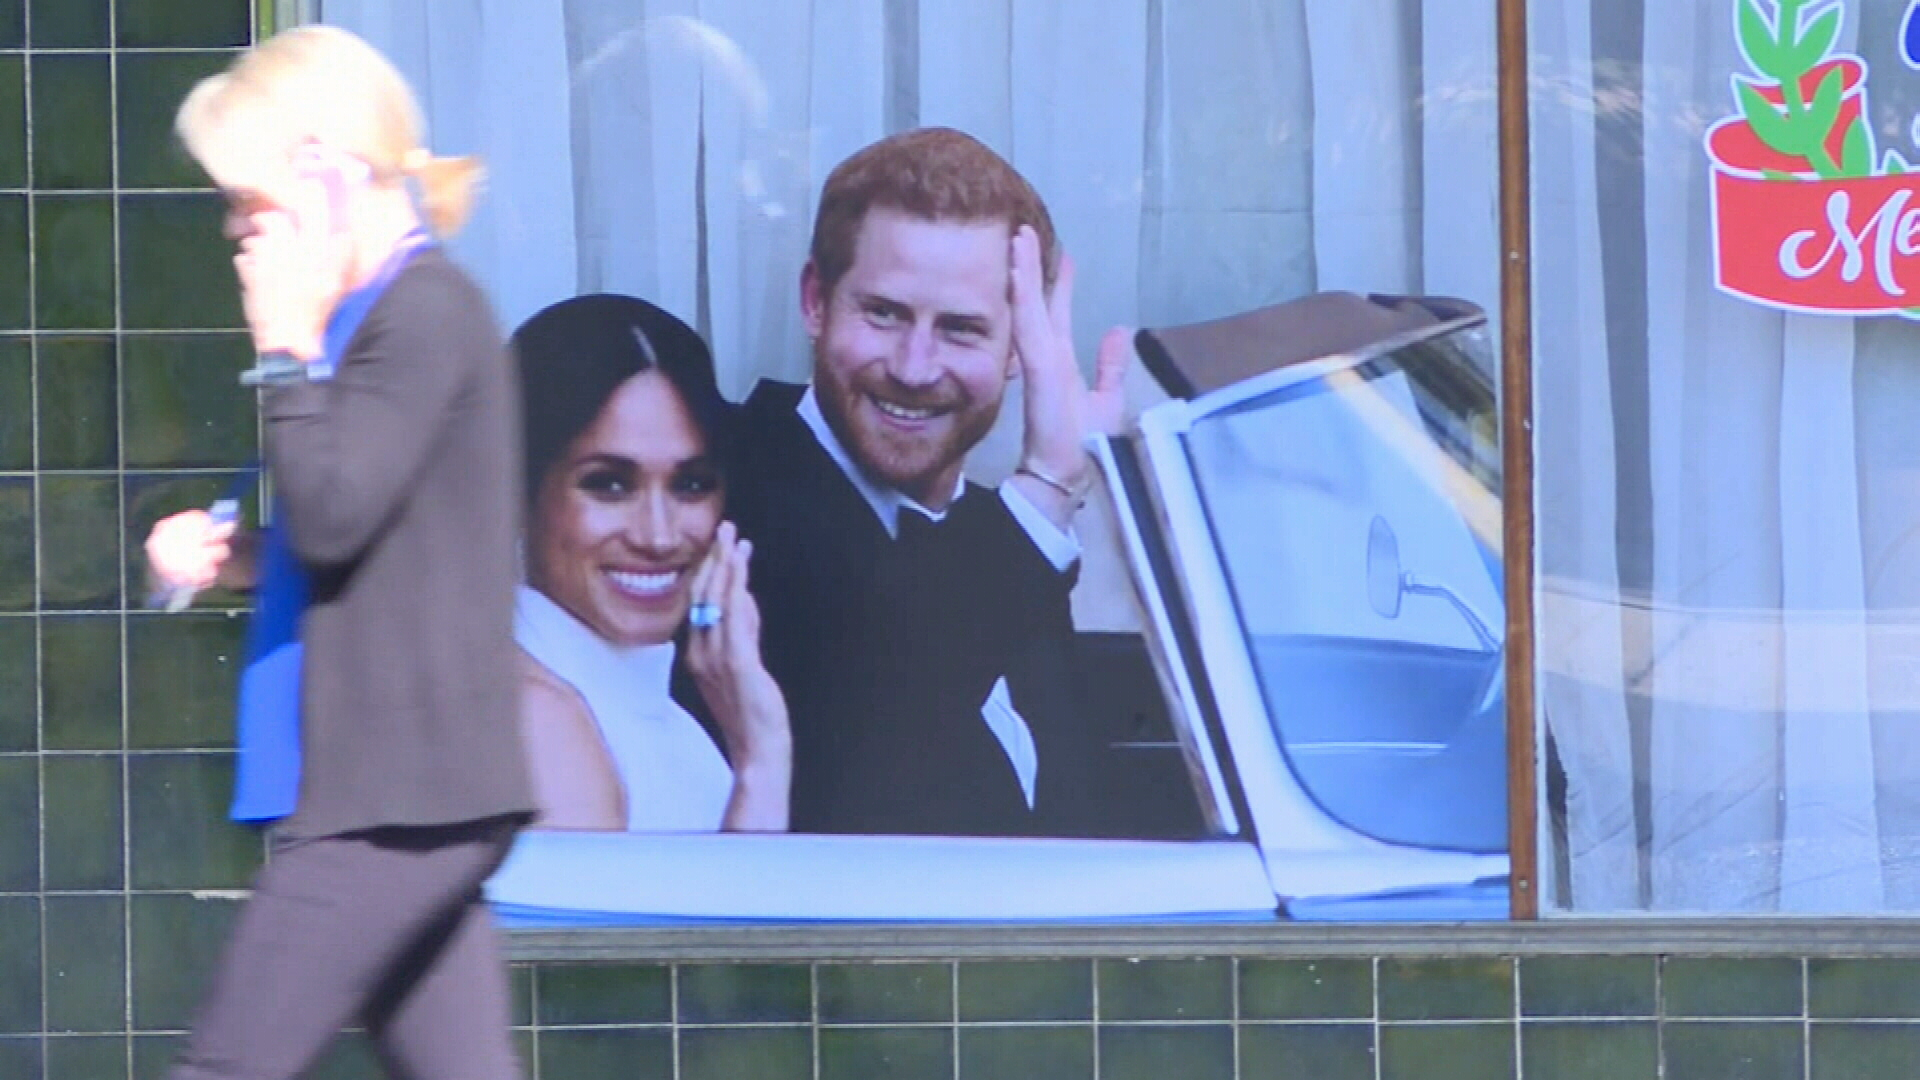 Dubbo prepares to welcome Prince Harry and Meghan